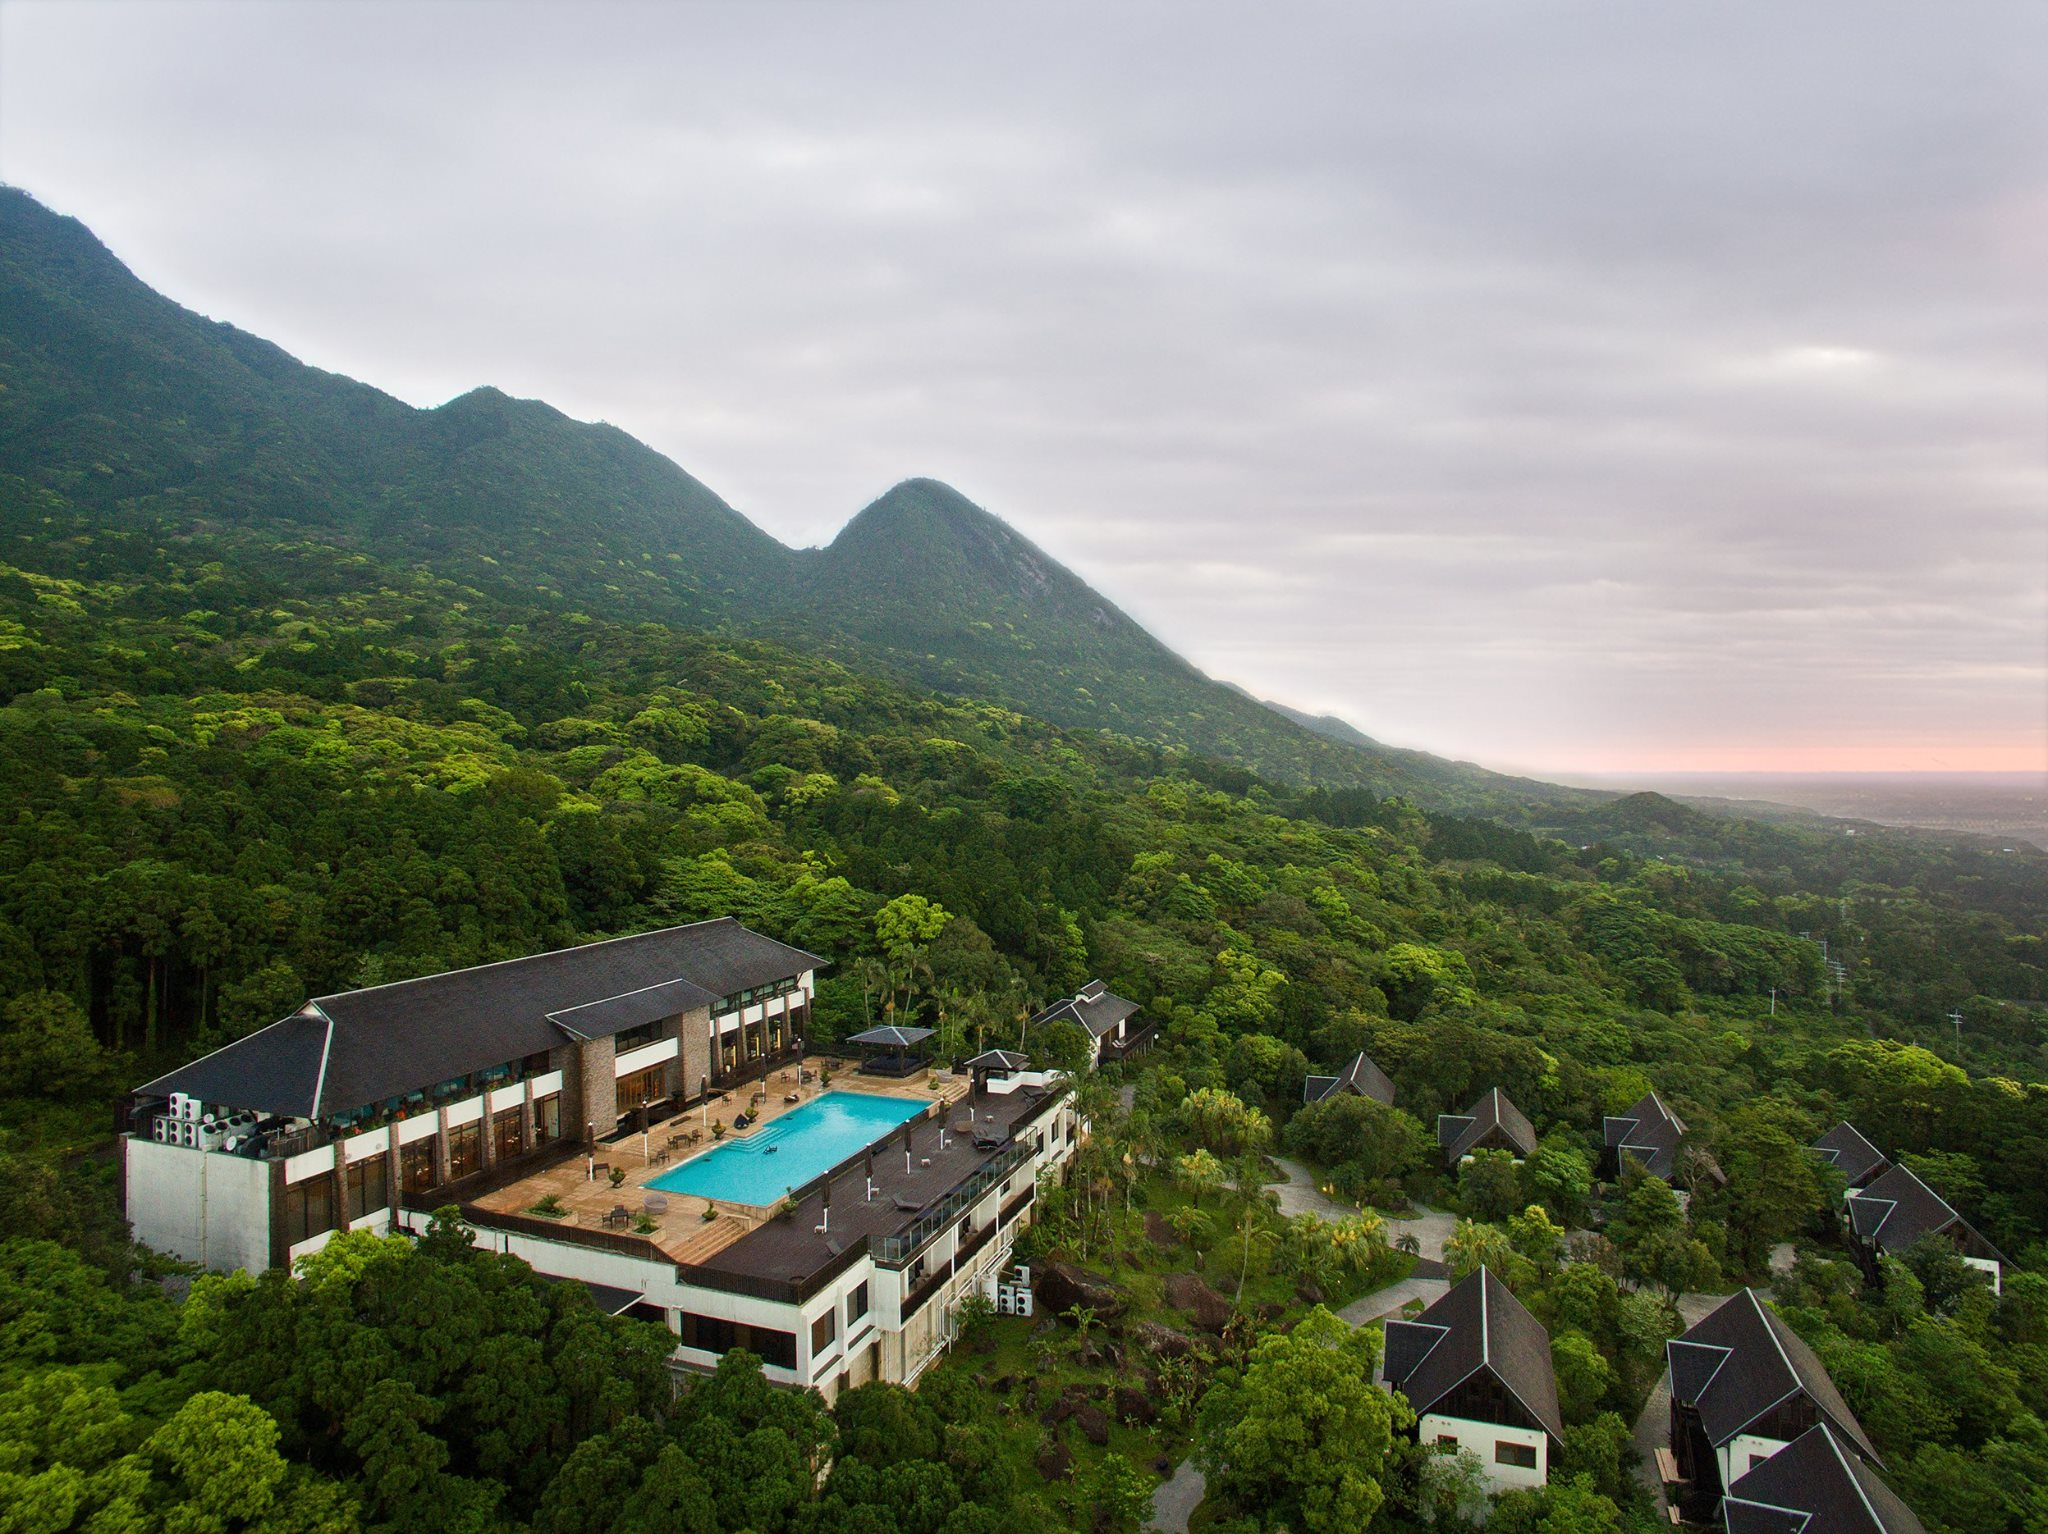 Large hotel with blue swimming pool surrounded by mountains and trees